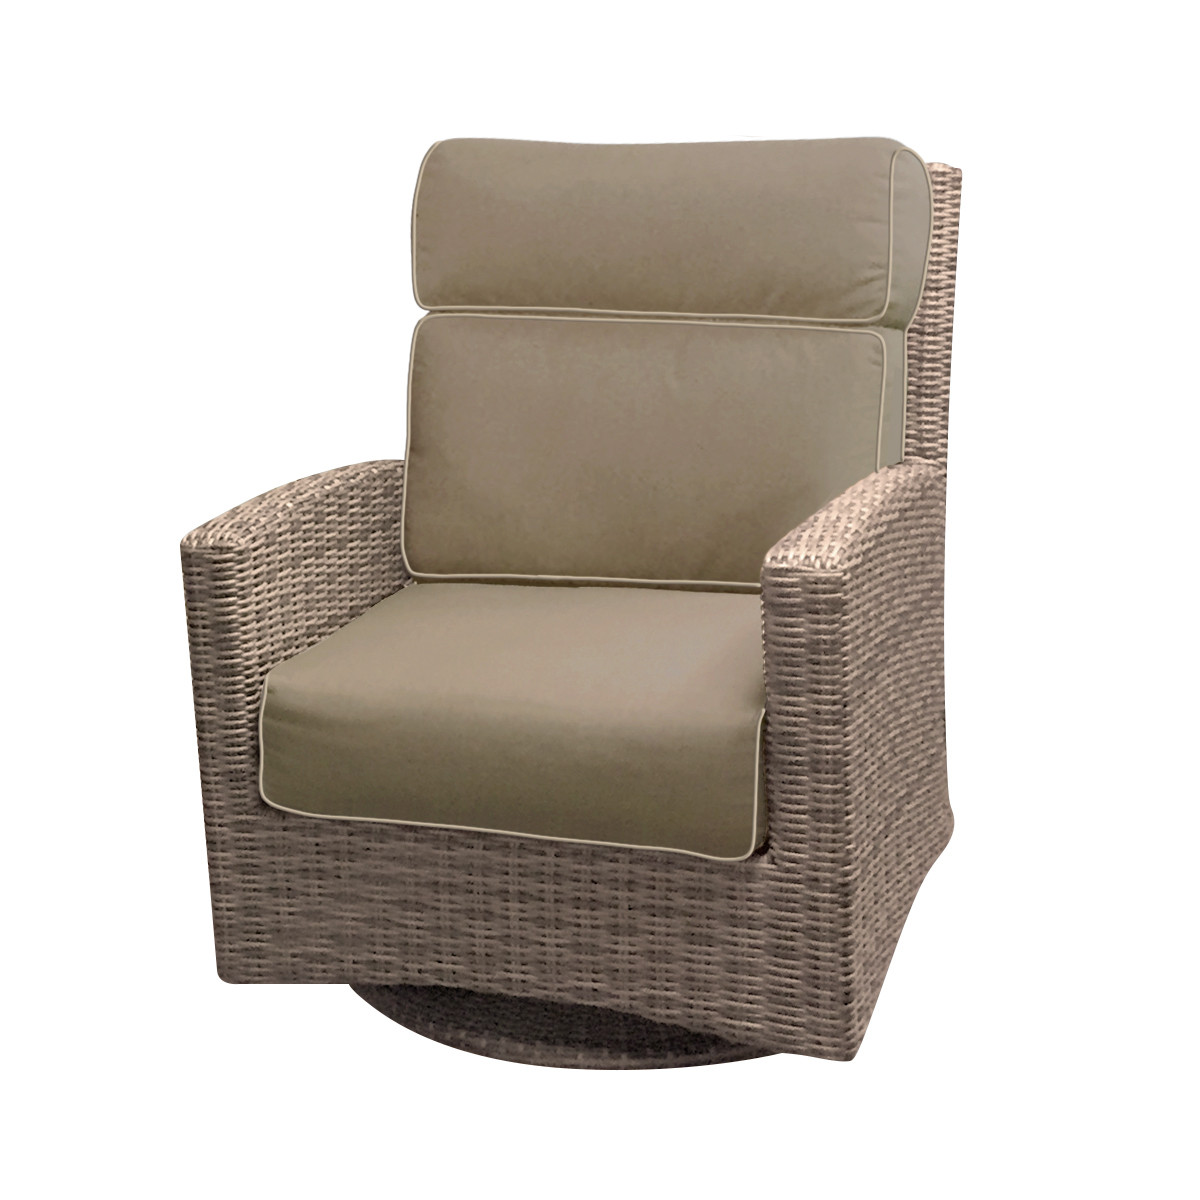 Pleasant Forever Patio Cypress Wicker High Back Swivel Rocker Club Chair By Northcape International Gmtry Best Dining Table And Chair Ideas Images Gmtryco